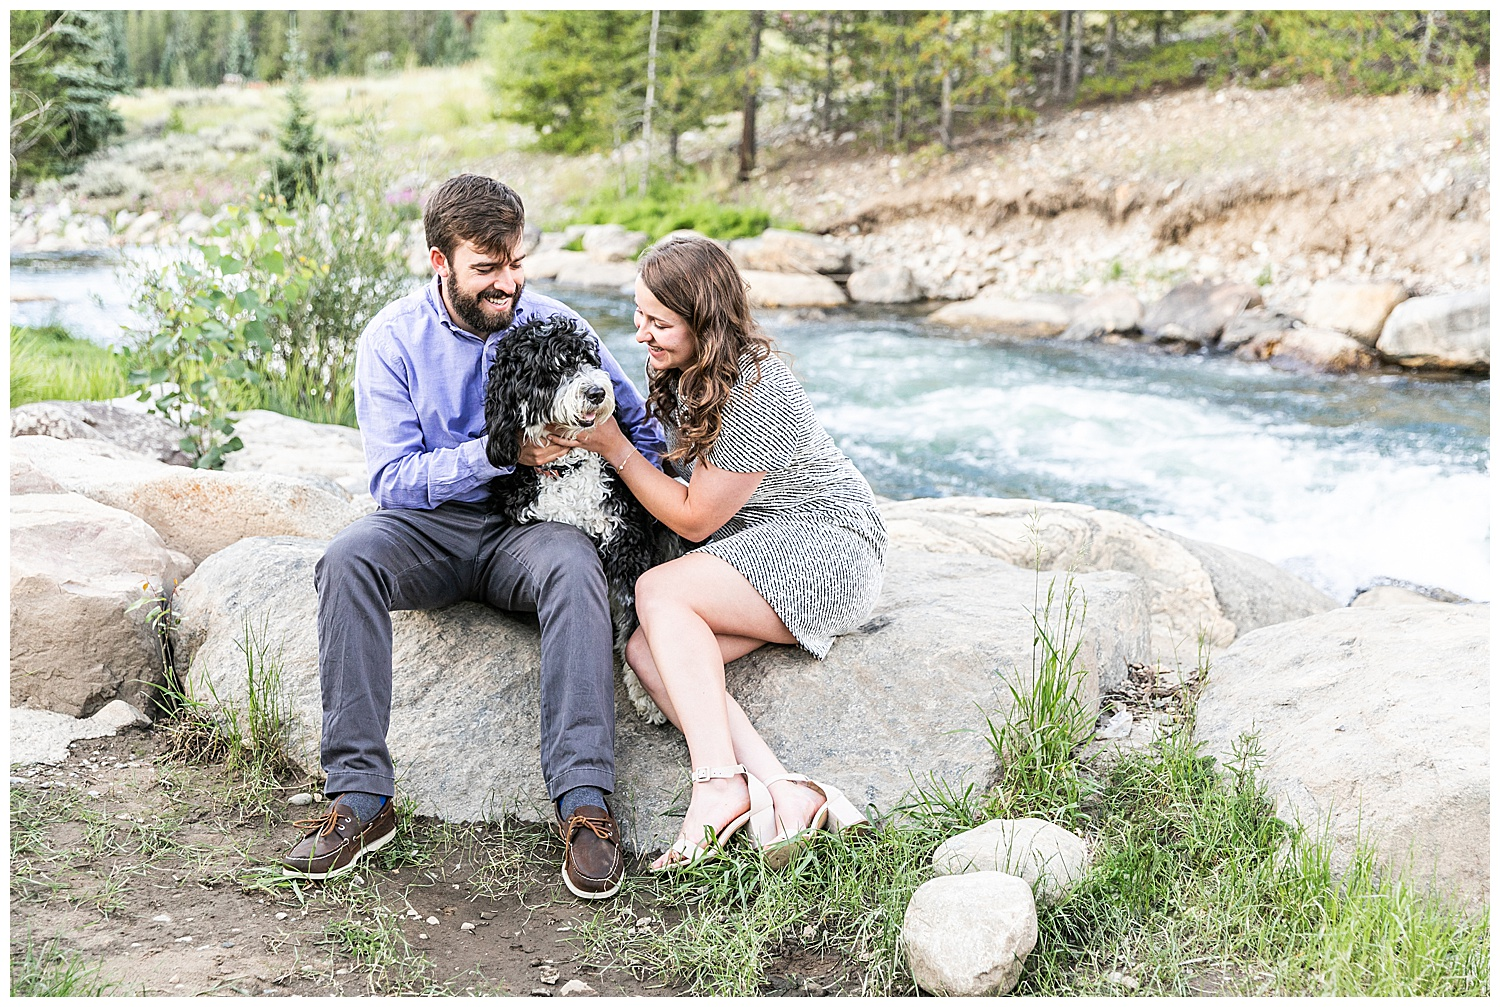 Molly + Ryan Breckenridge Destination Engagement Session Living Radiant Photography_0015.jpg